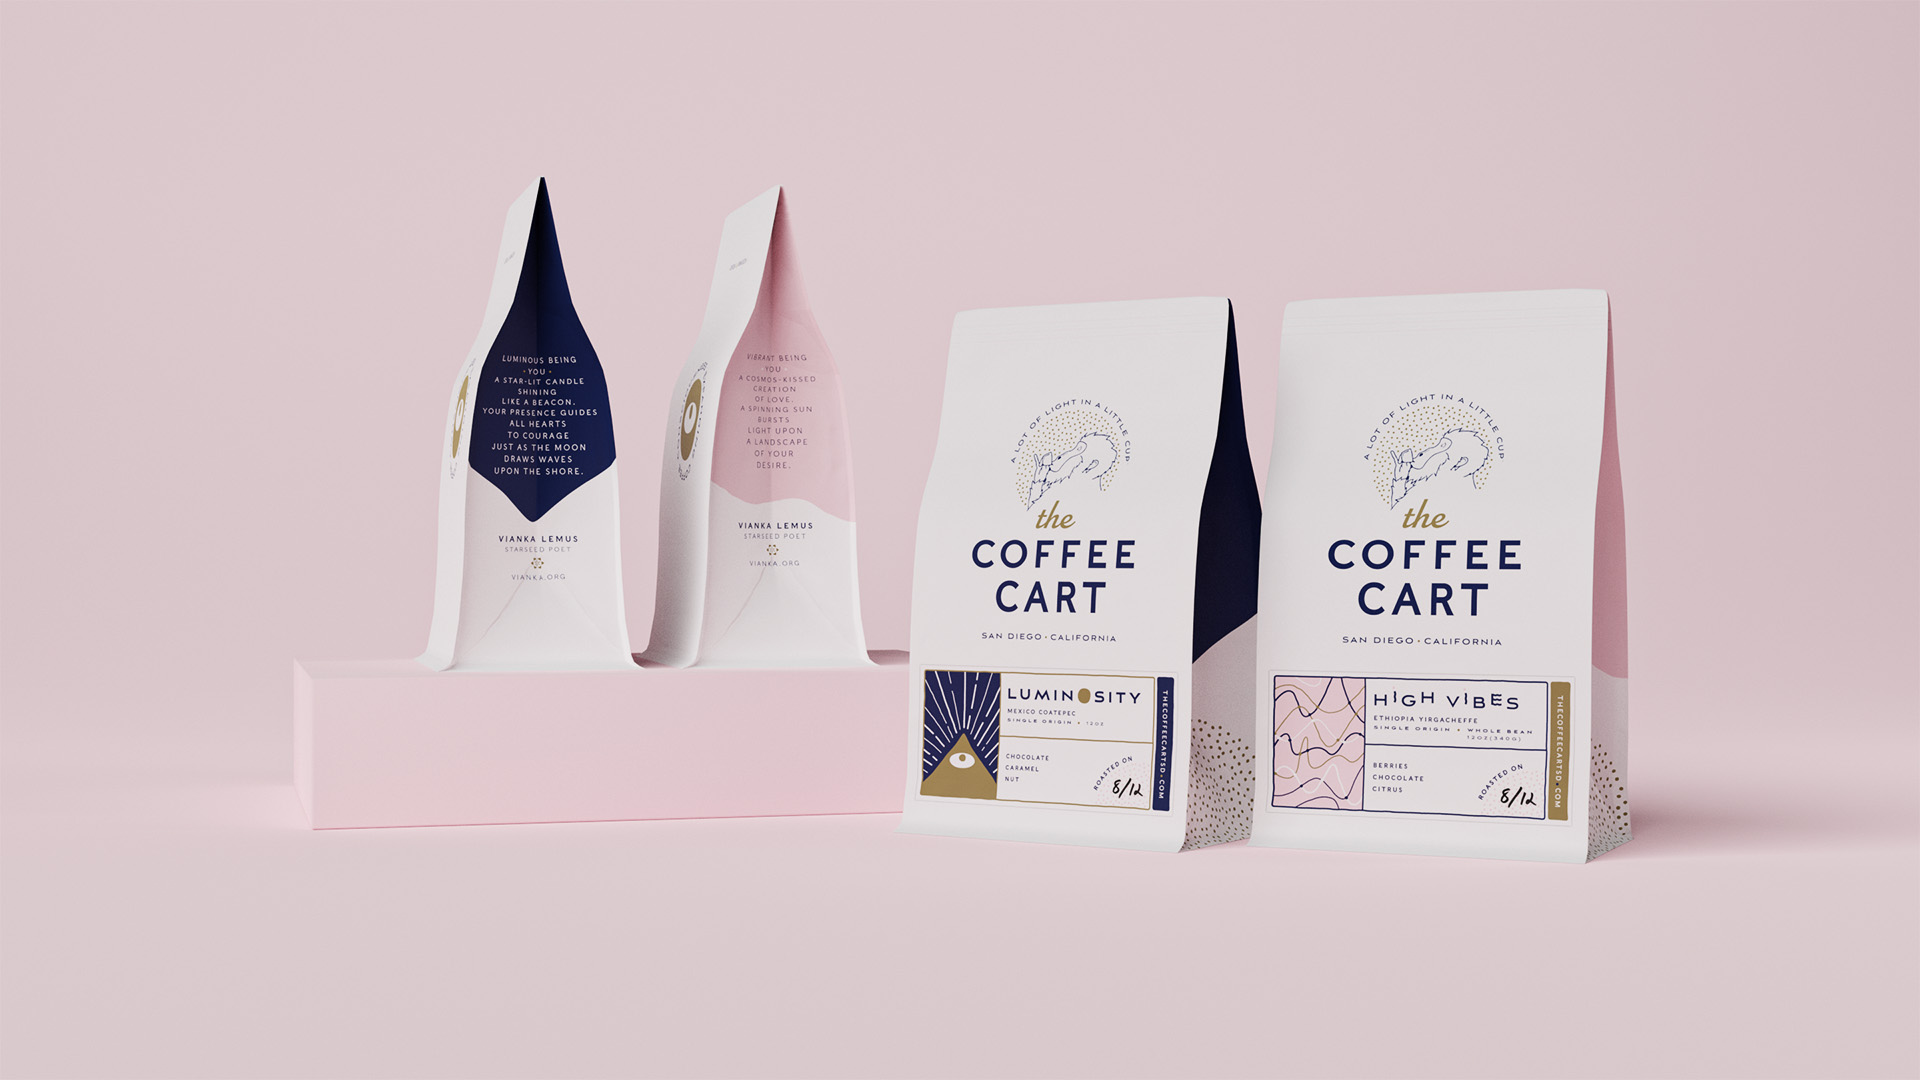 The Coffee Cart Brand and Packaging Design by Truant Studio